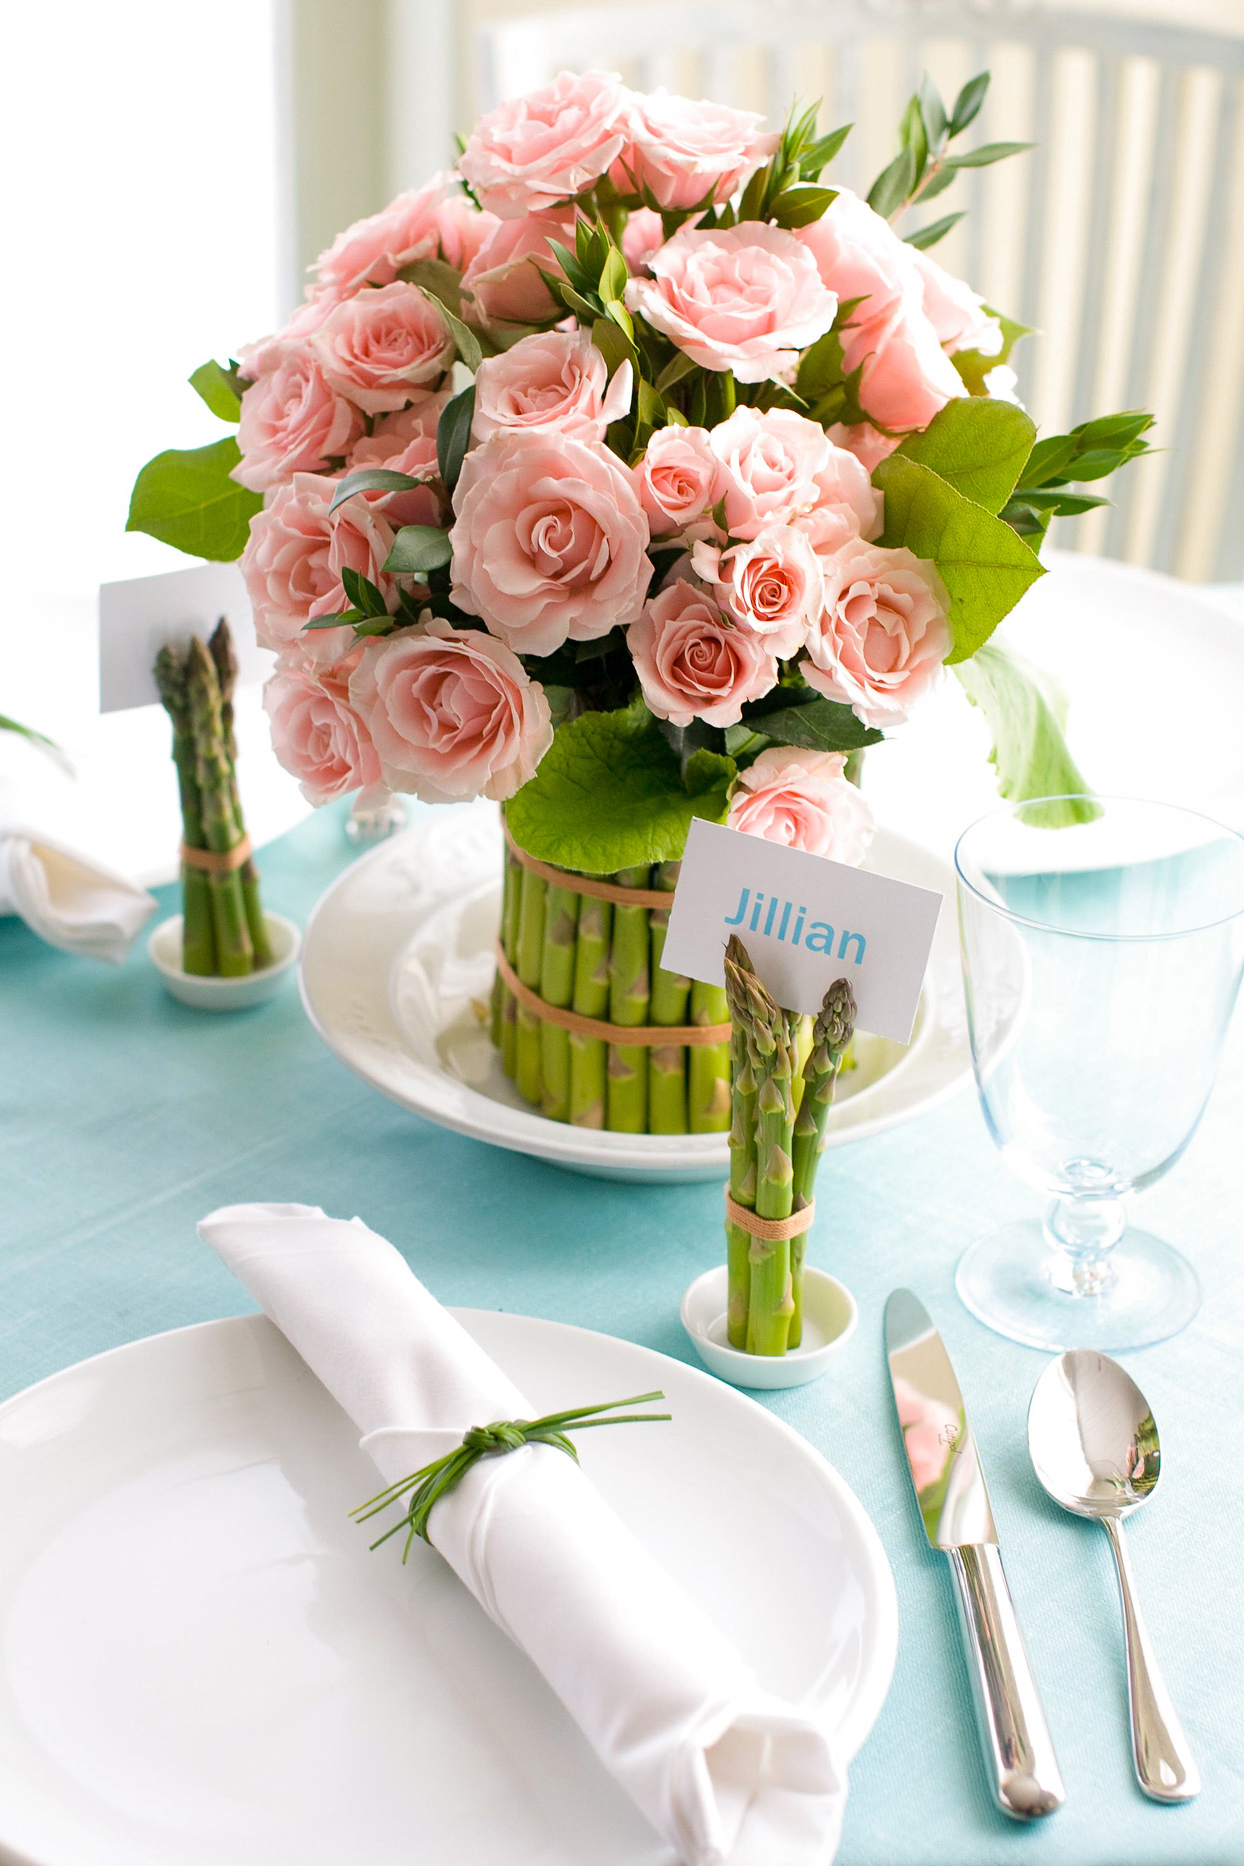 asparagus pink roses centerpiece place settings